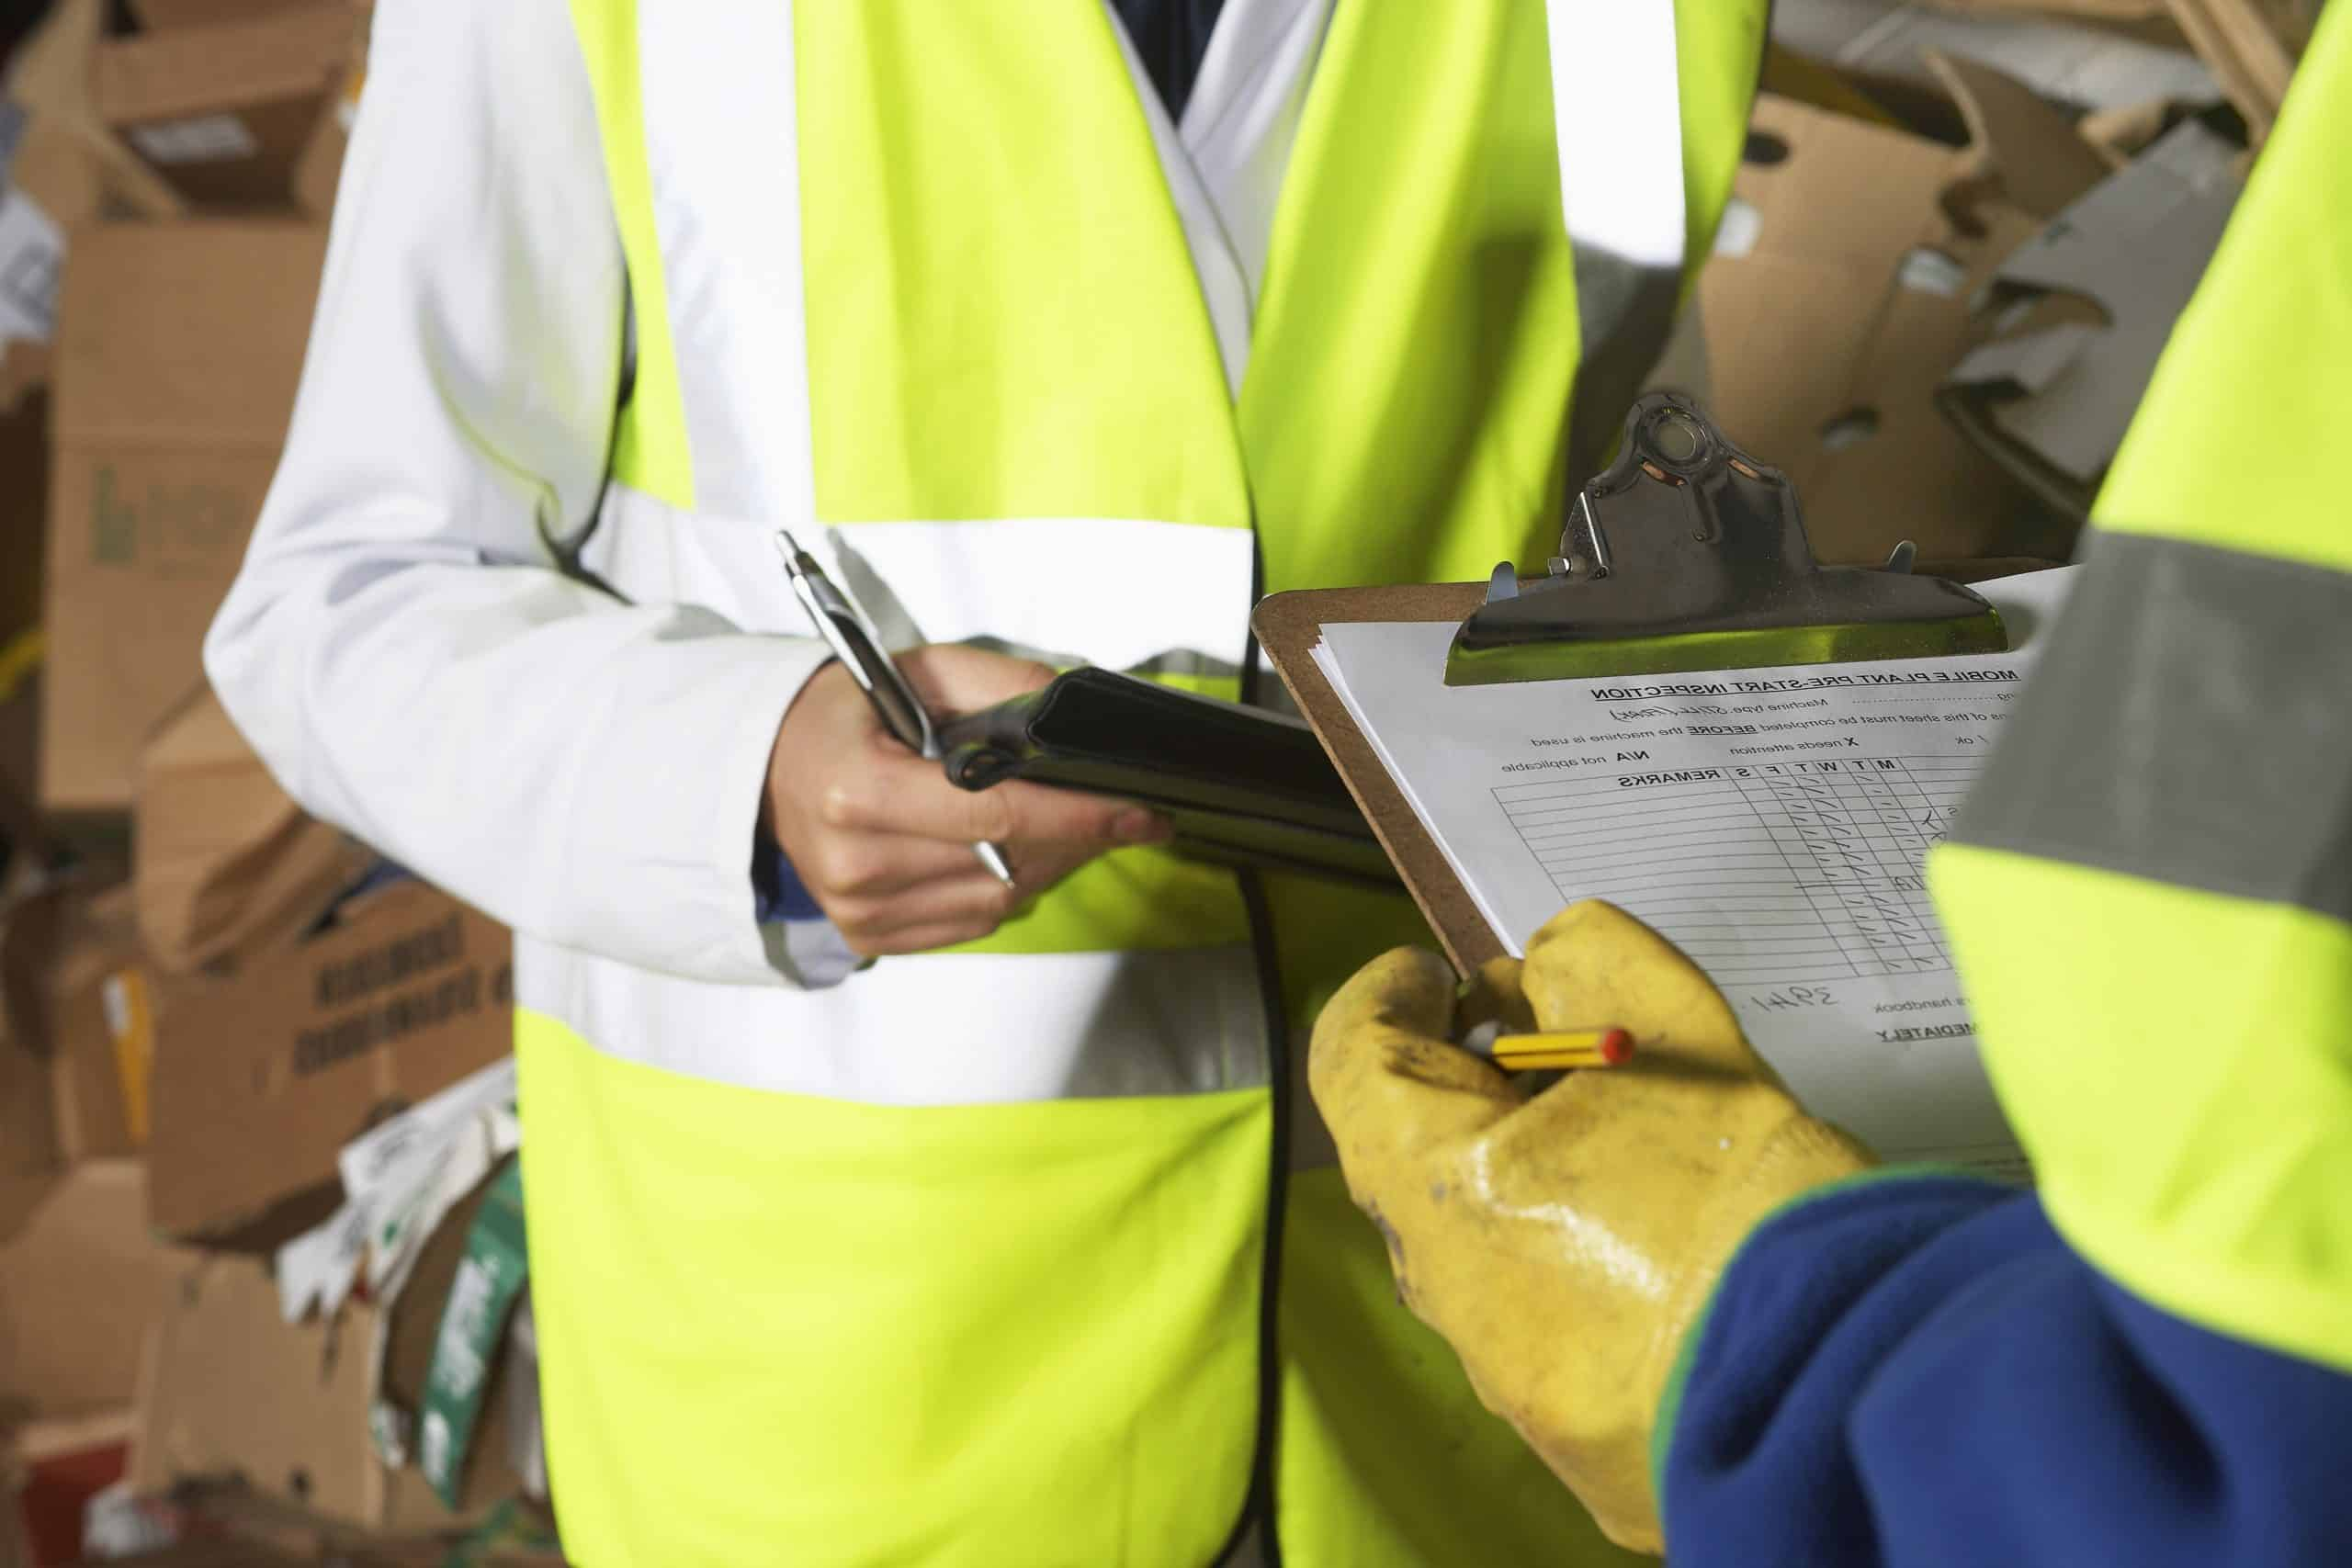 Midsection of two workers holding clipboards in industry